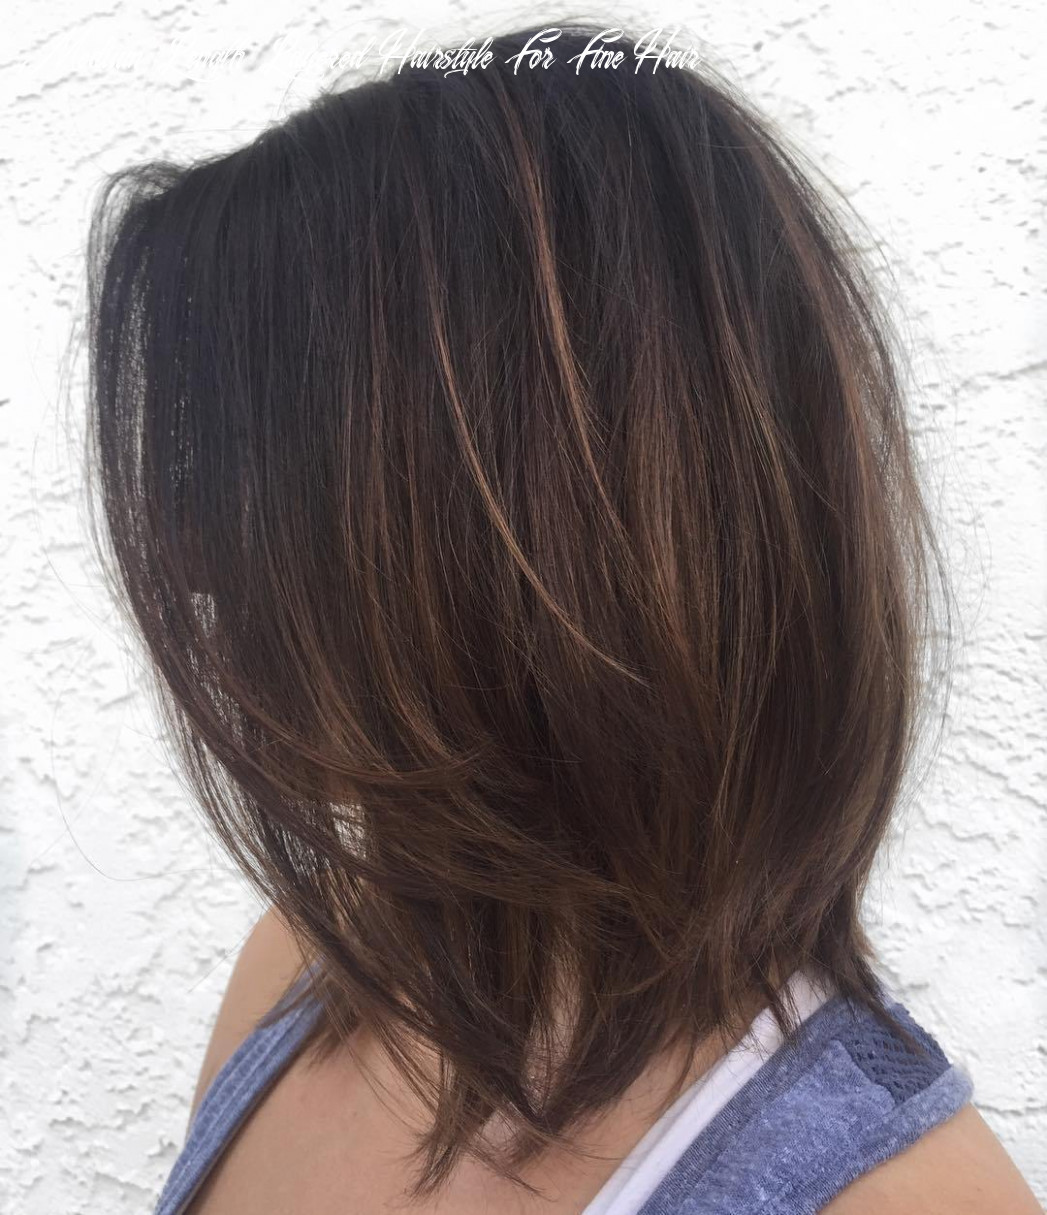 11 perfect medium length hairstyles for thin hair in 11 medium length layered hairstyle for fine hair